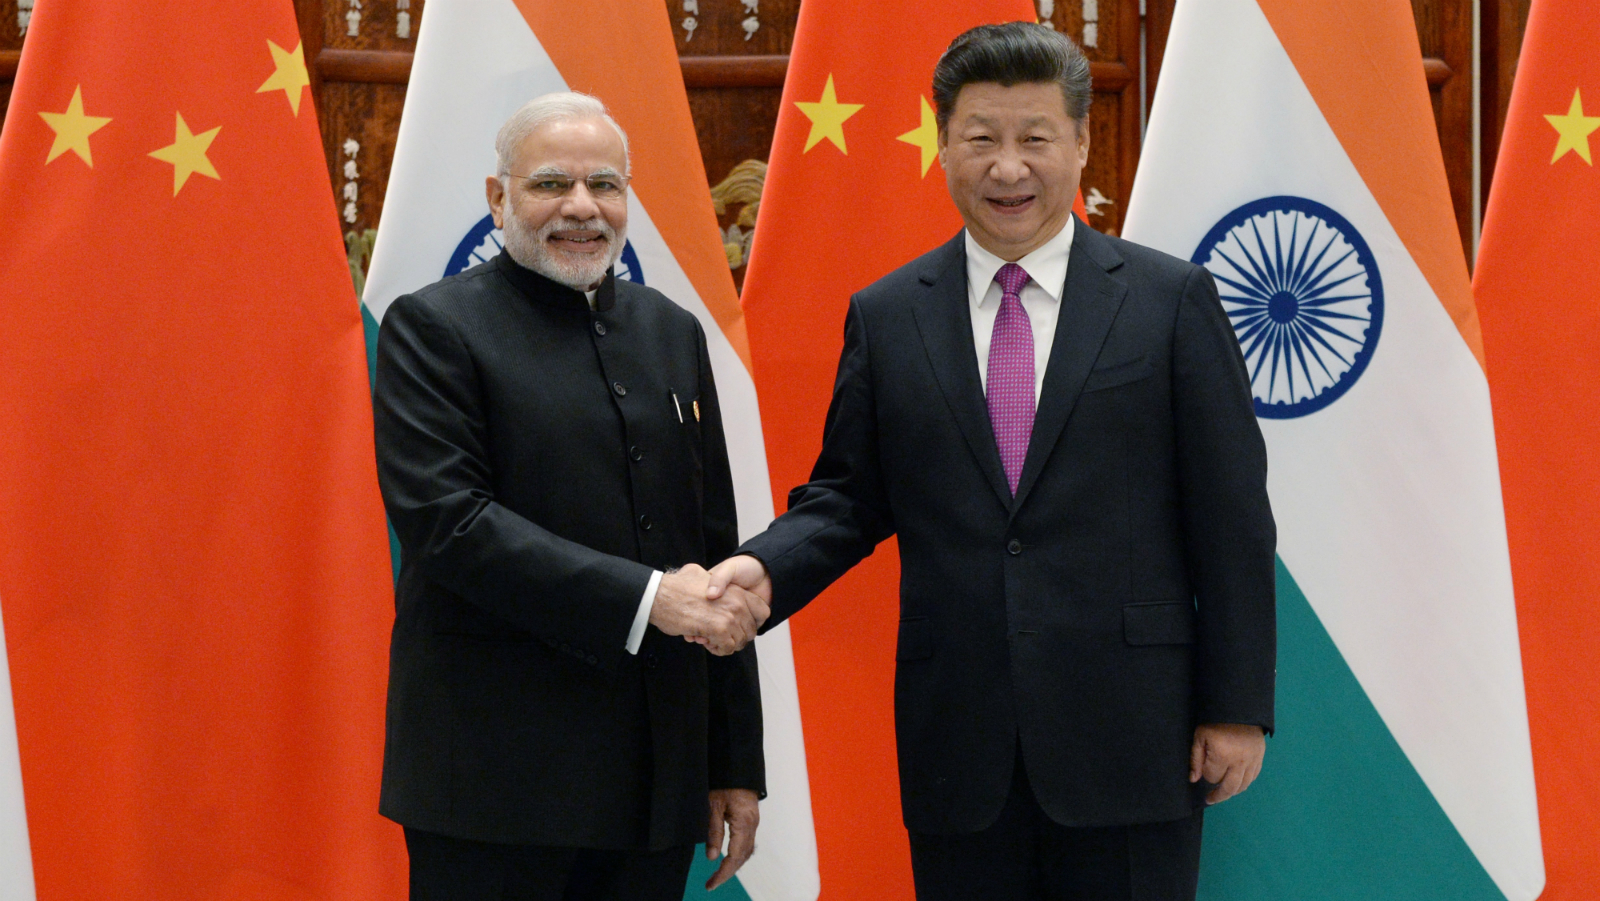 Indian Prime Minister Narendra Modi, left, poses with Chinese President Xi Jinping for a photo before a meeting at the West Lake State Guest House in Hangzhou, China, Sunday, Sept. 4, 2016, ahead of the G20 Leaders Summit.